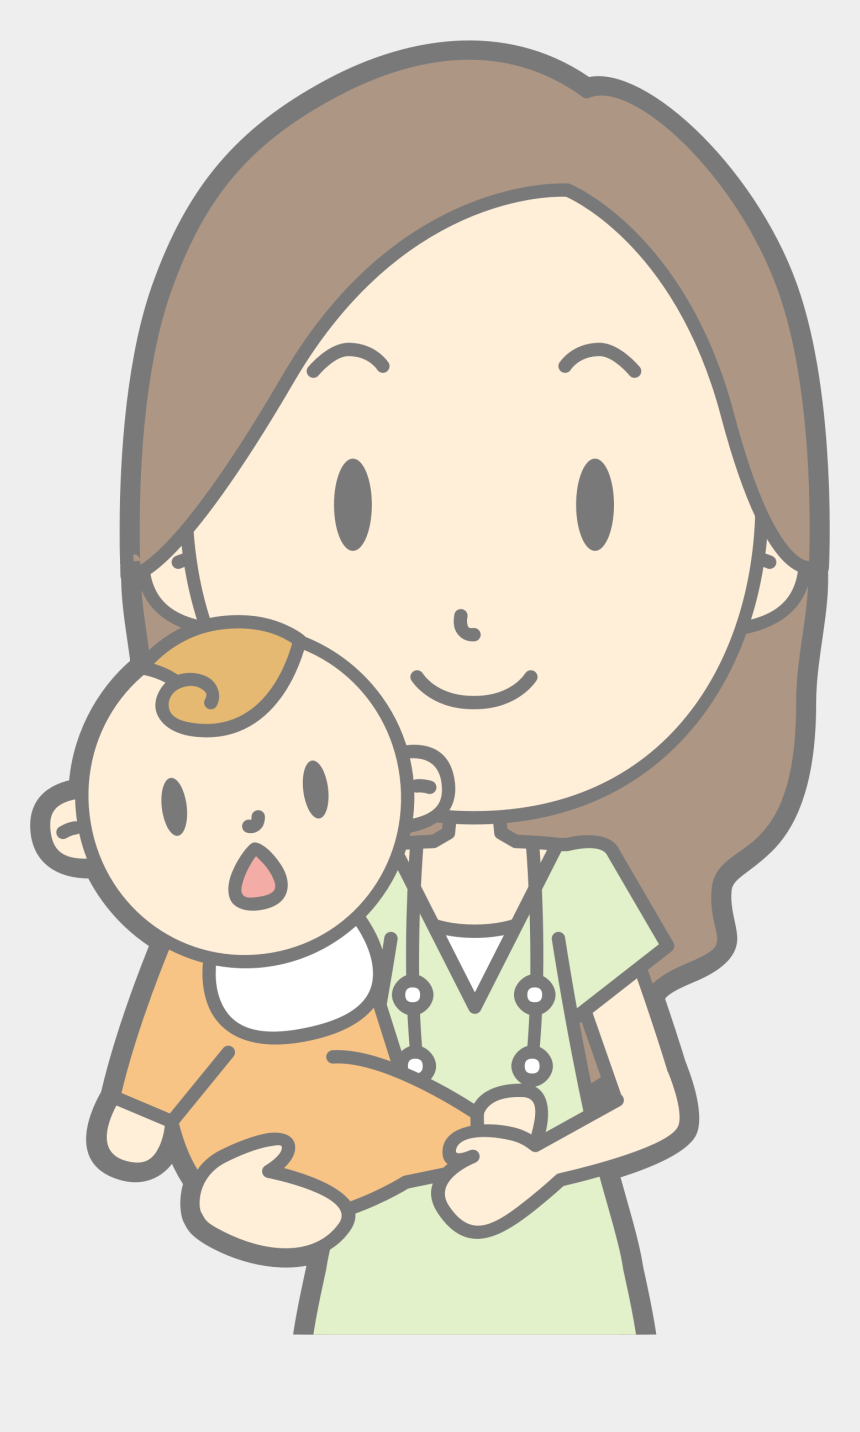 mother clipart, Cartoons - Mother Clipart Patient - Happy Mother Day Png